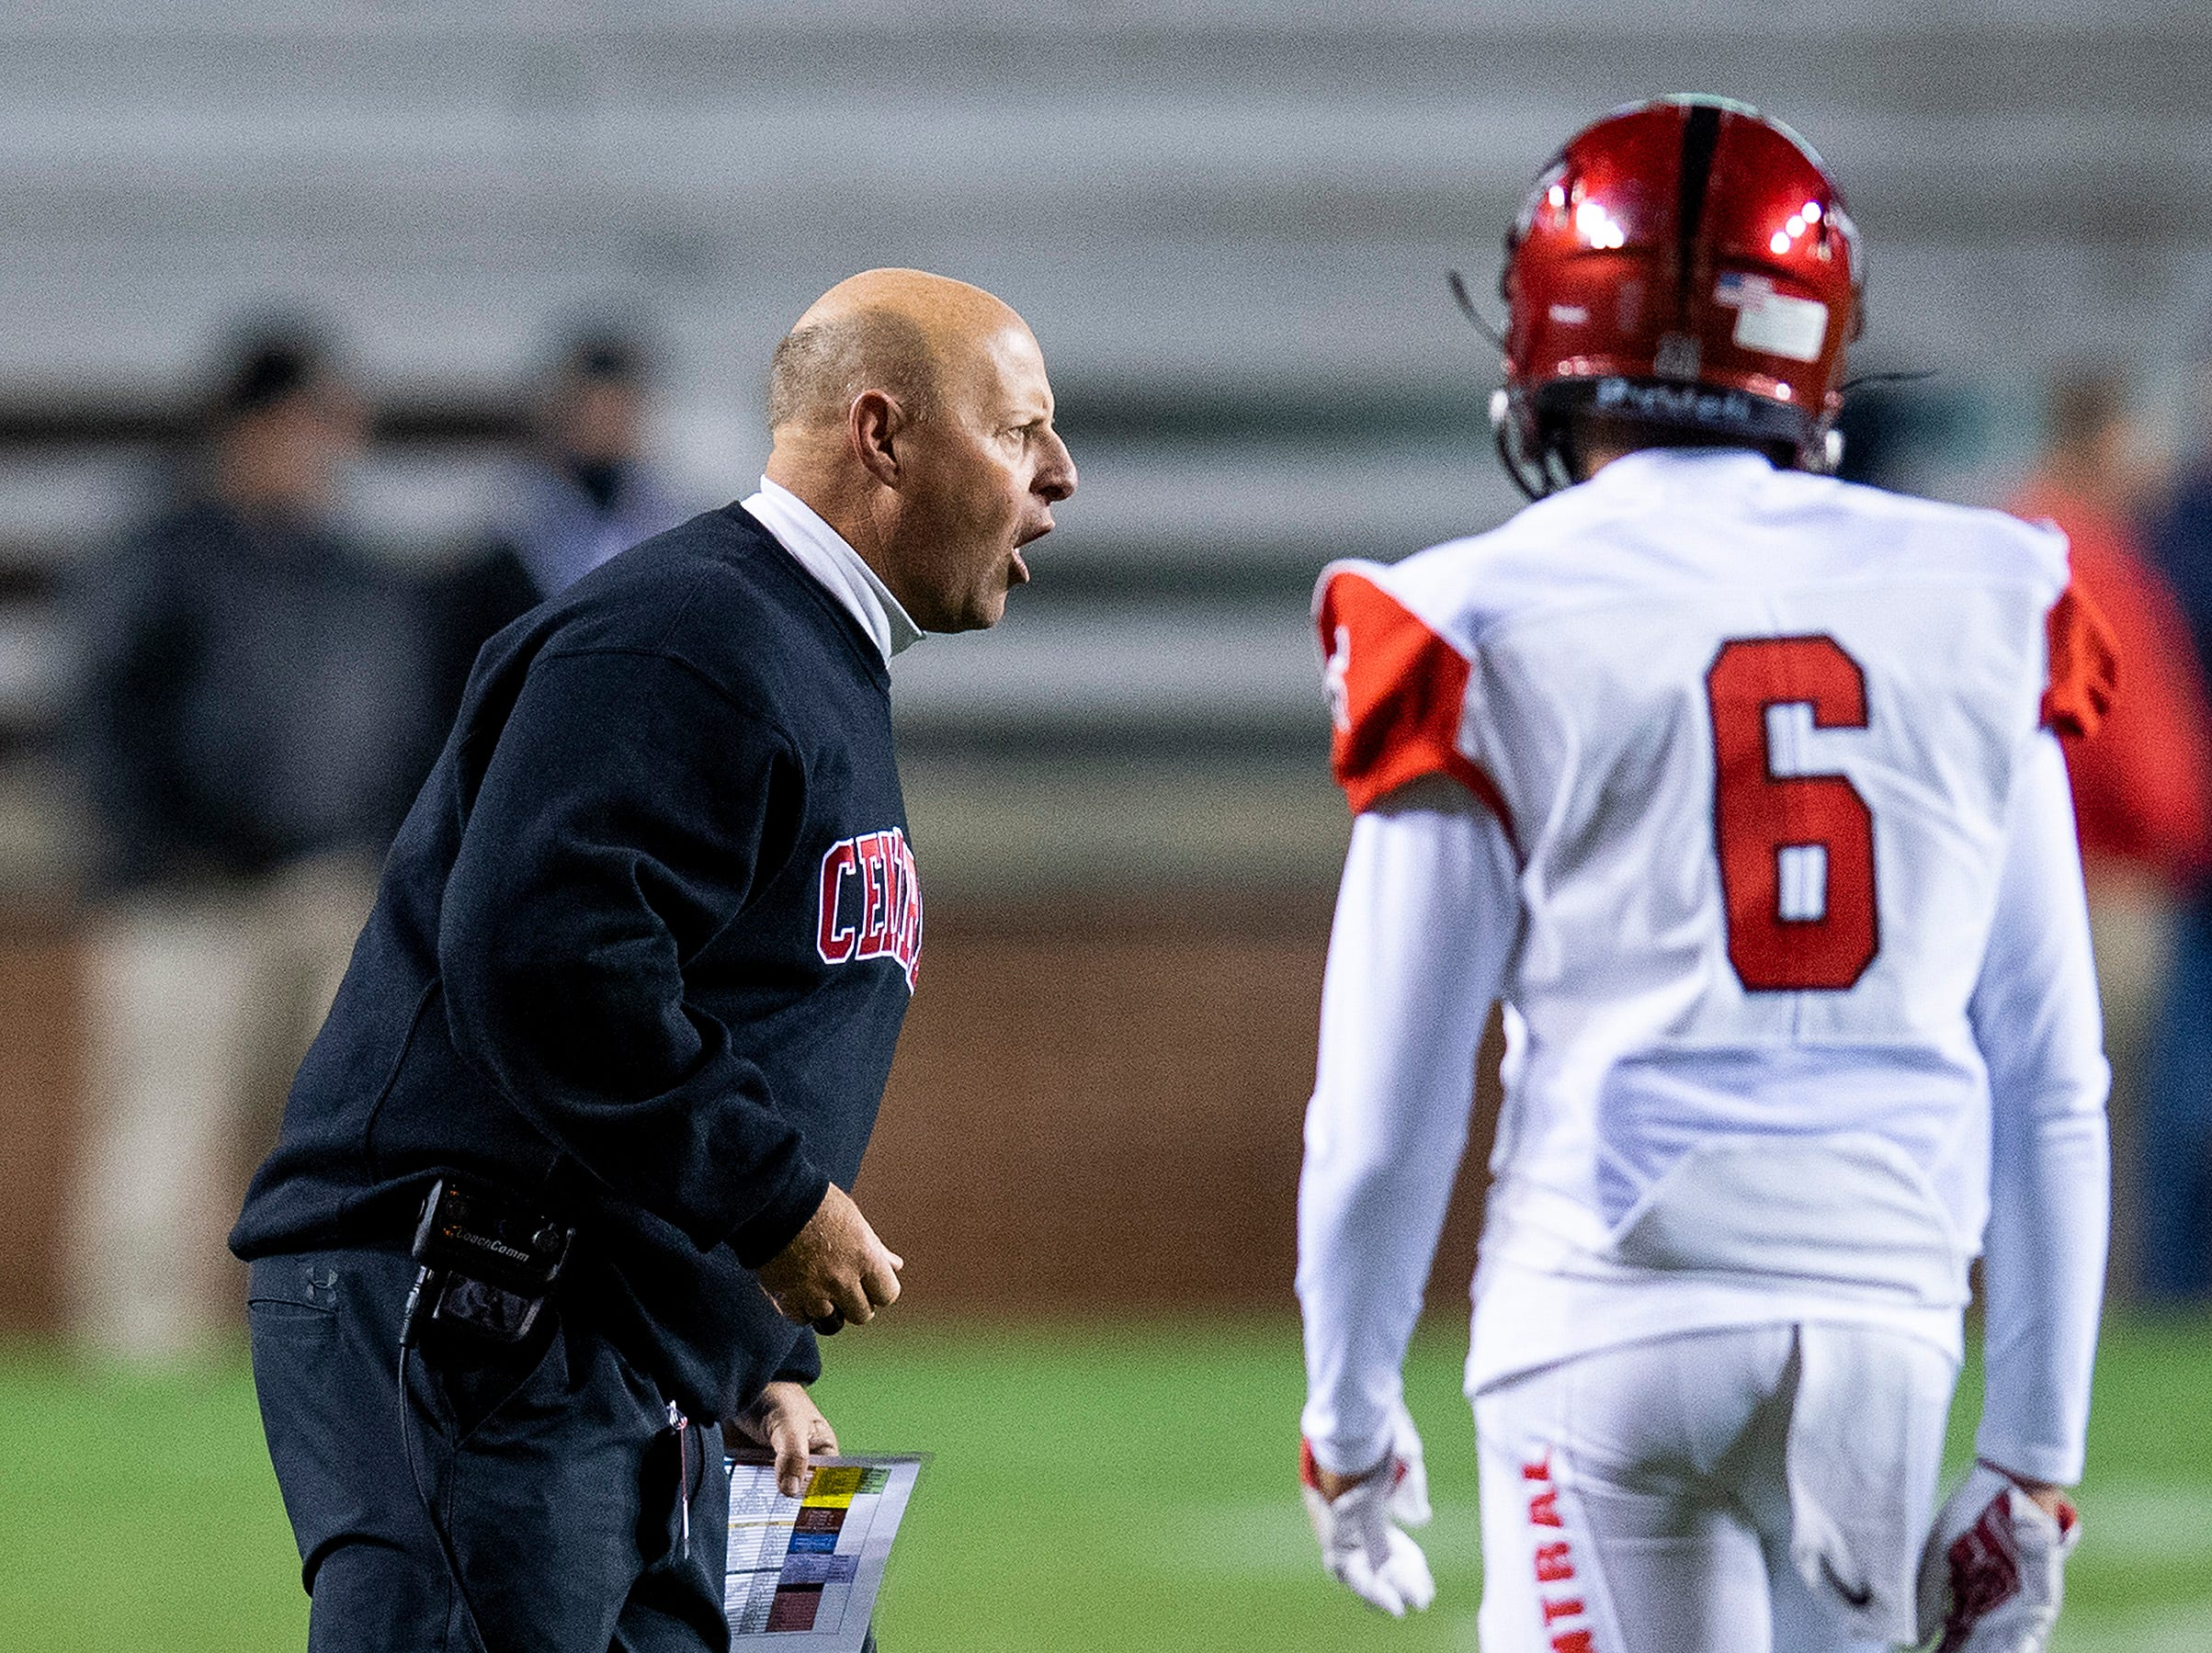 Central-Phenix City coach Jamey DuBose coaches against Thompson during the AHSAA Class 7A State Championship Football Game at Jordan Hare Stadium in Auburn, Ala., on Wednesday evening December 5, 2018.